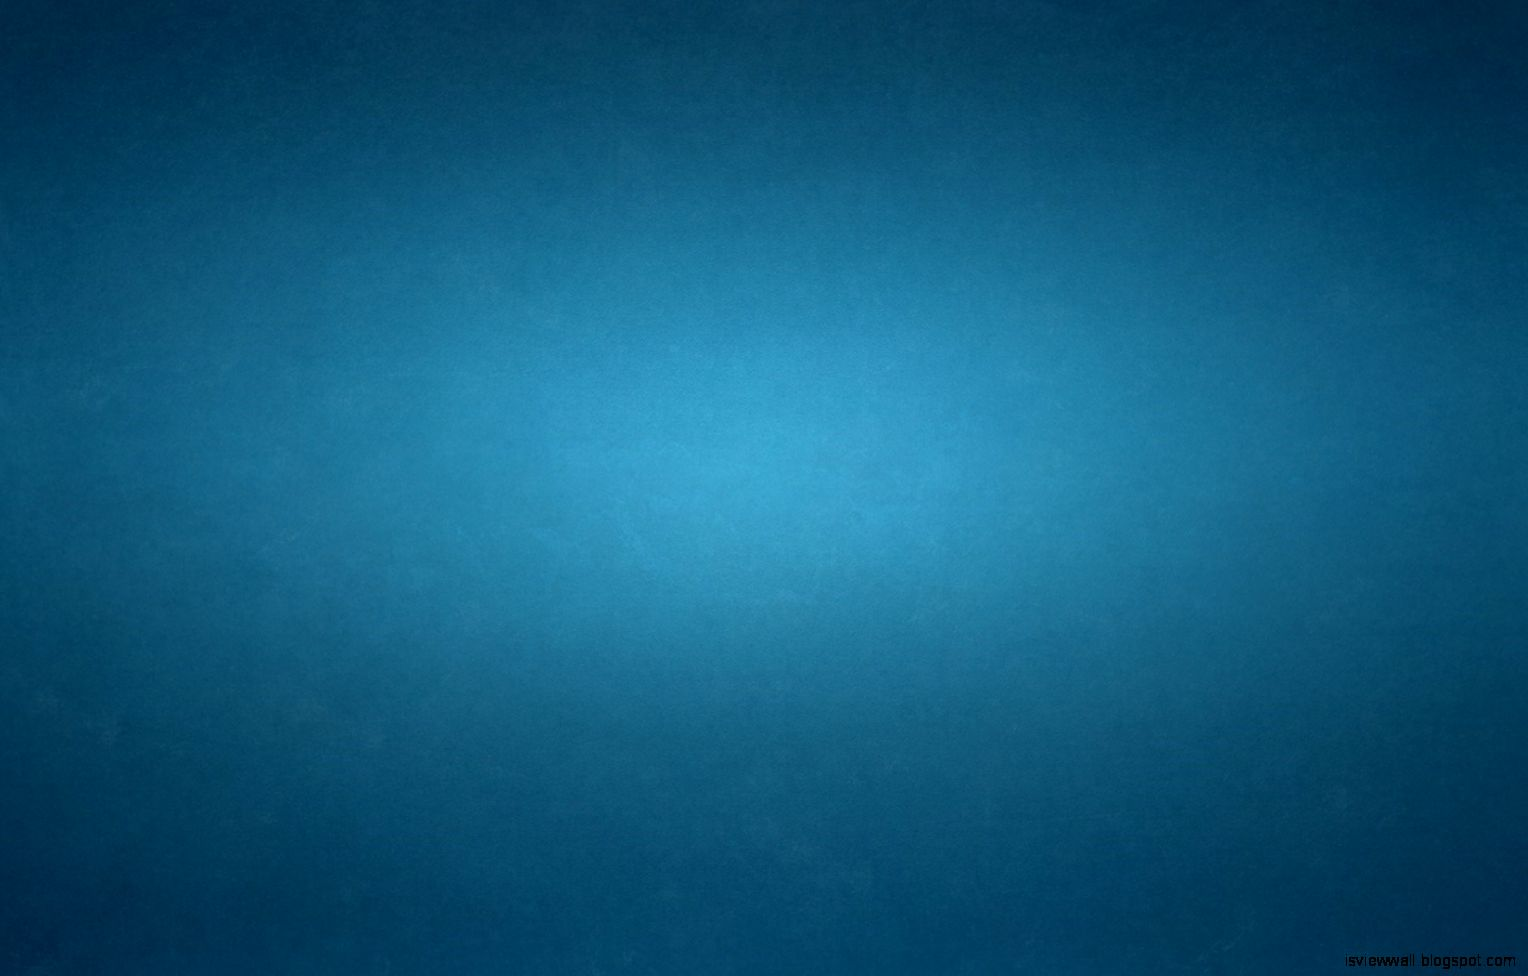 Blue Wall Paint Texture Simple Iphone 5 Wallpaper View